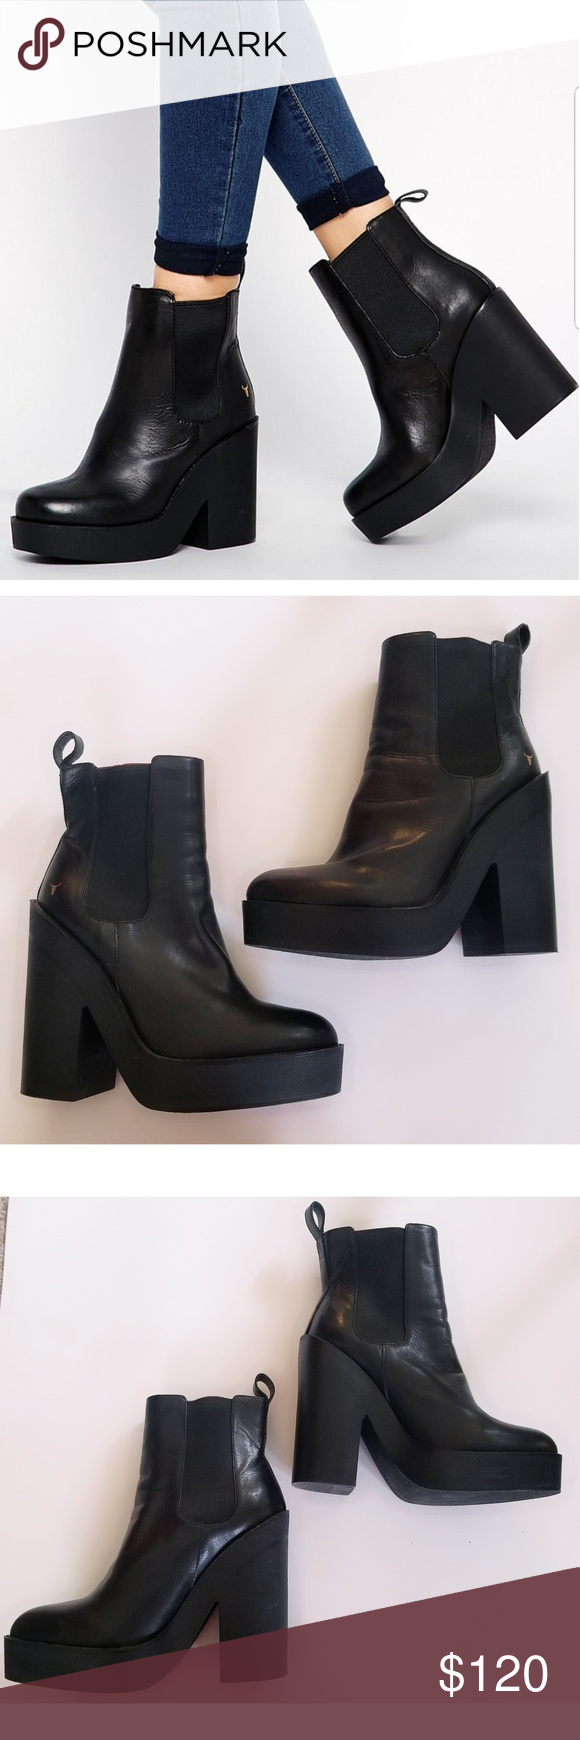 830b80ea23 Windsor Smith Chunky Heeled Chelsea Boots Size 7 Gently used condition  Black Windsor Smith Chunky Heeled